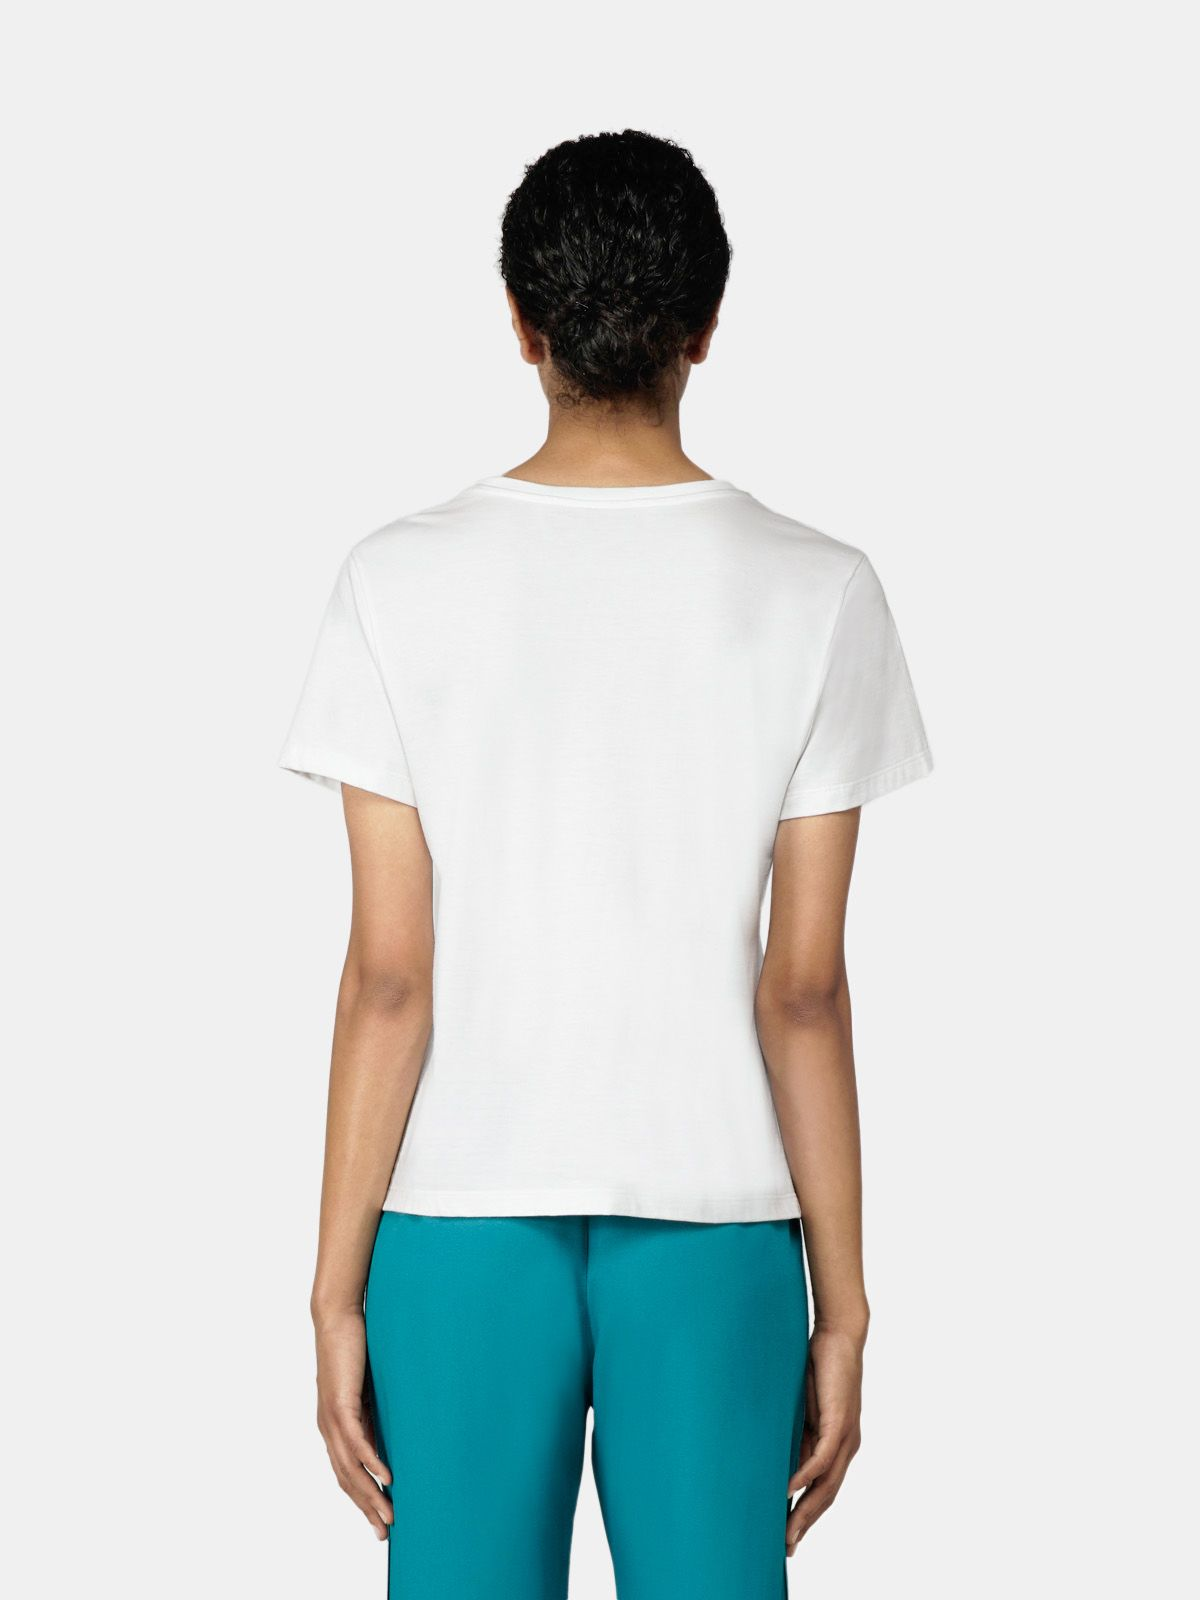 Golden Goose - Ania white T-shirt with Original Series print in